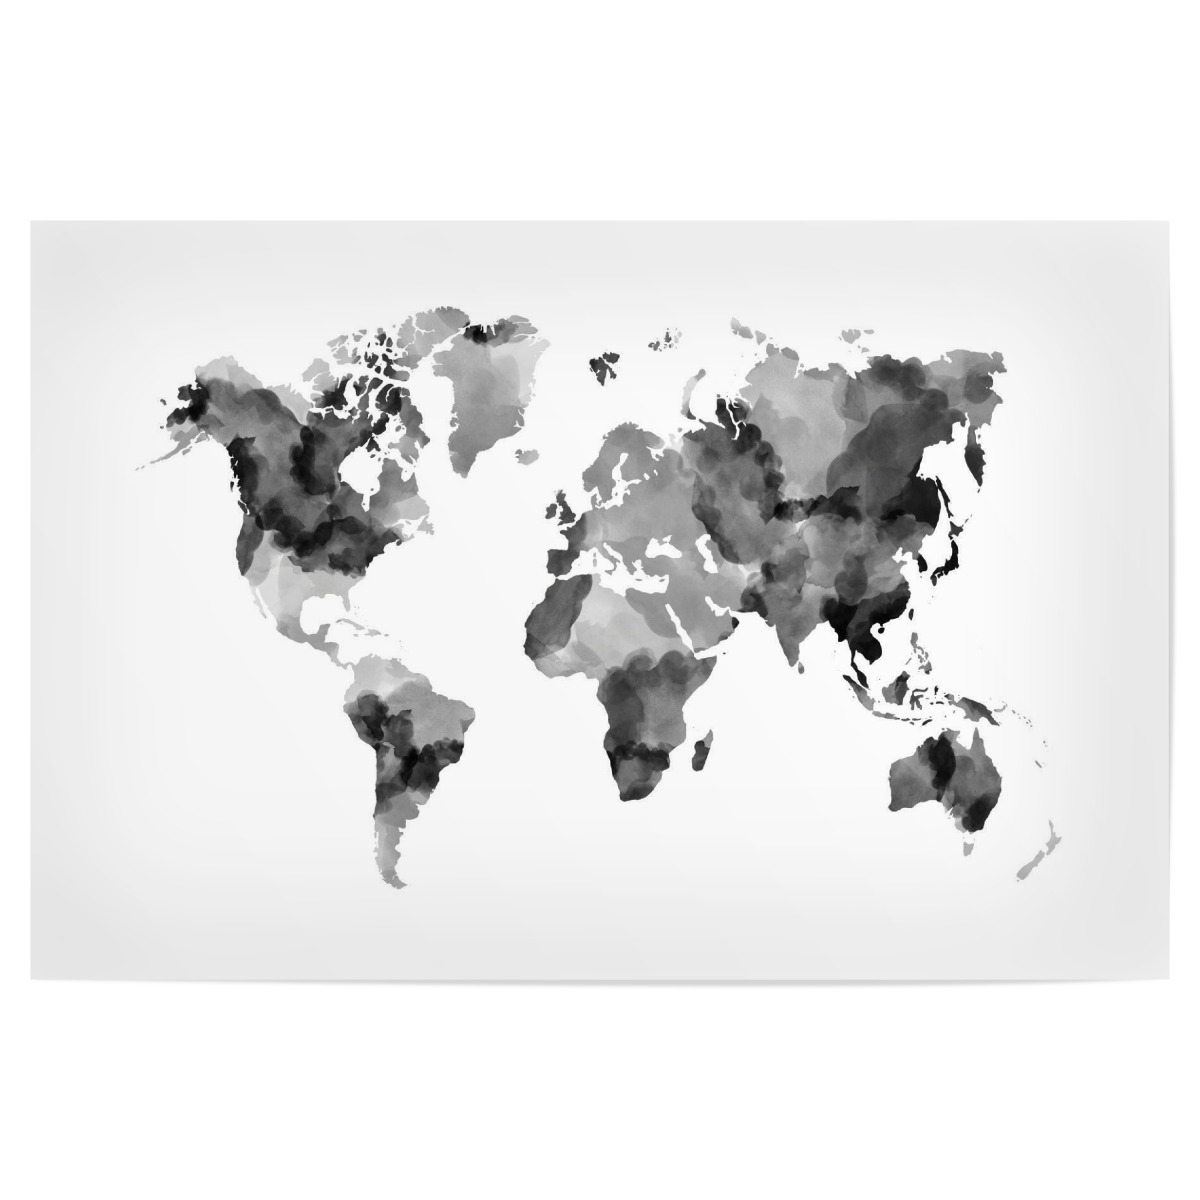 World Map black & white als Poster bei artboxONE kaufen